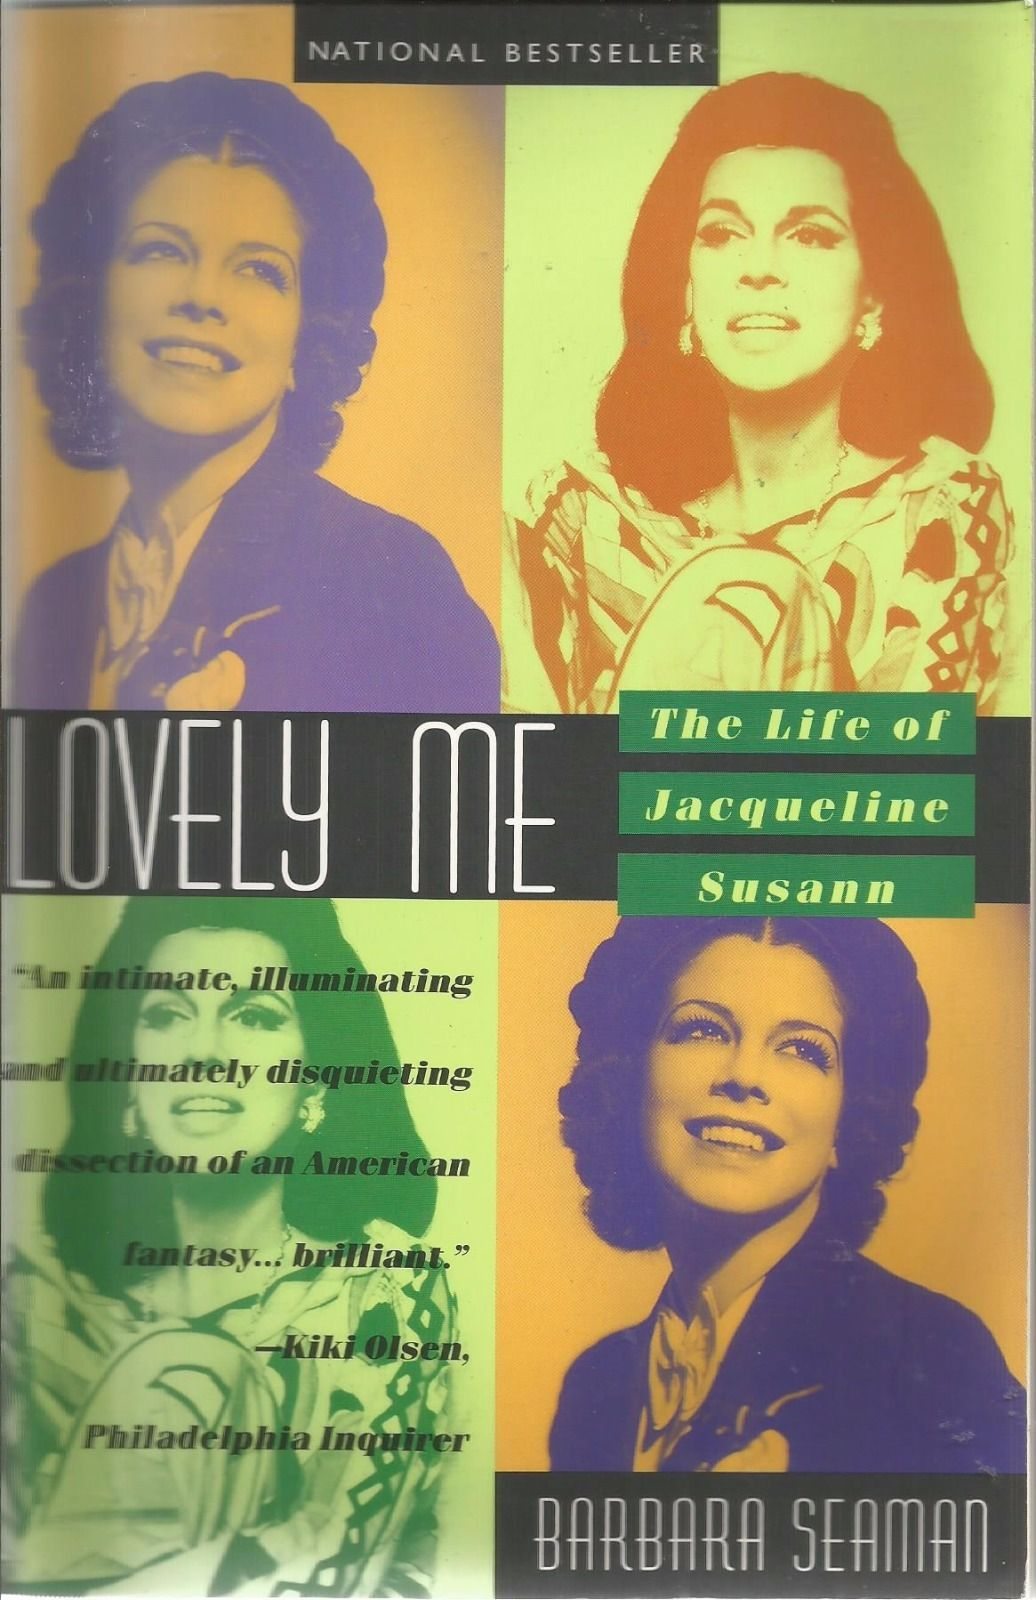 Lovely Me: The Life of Jacqueline Susann, by Barbara Seaman